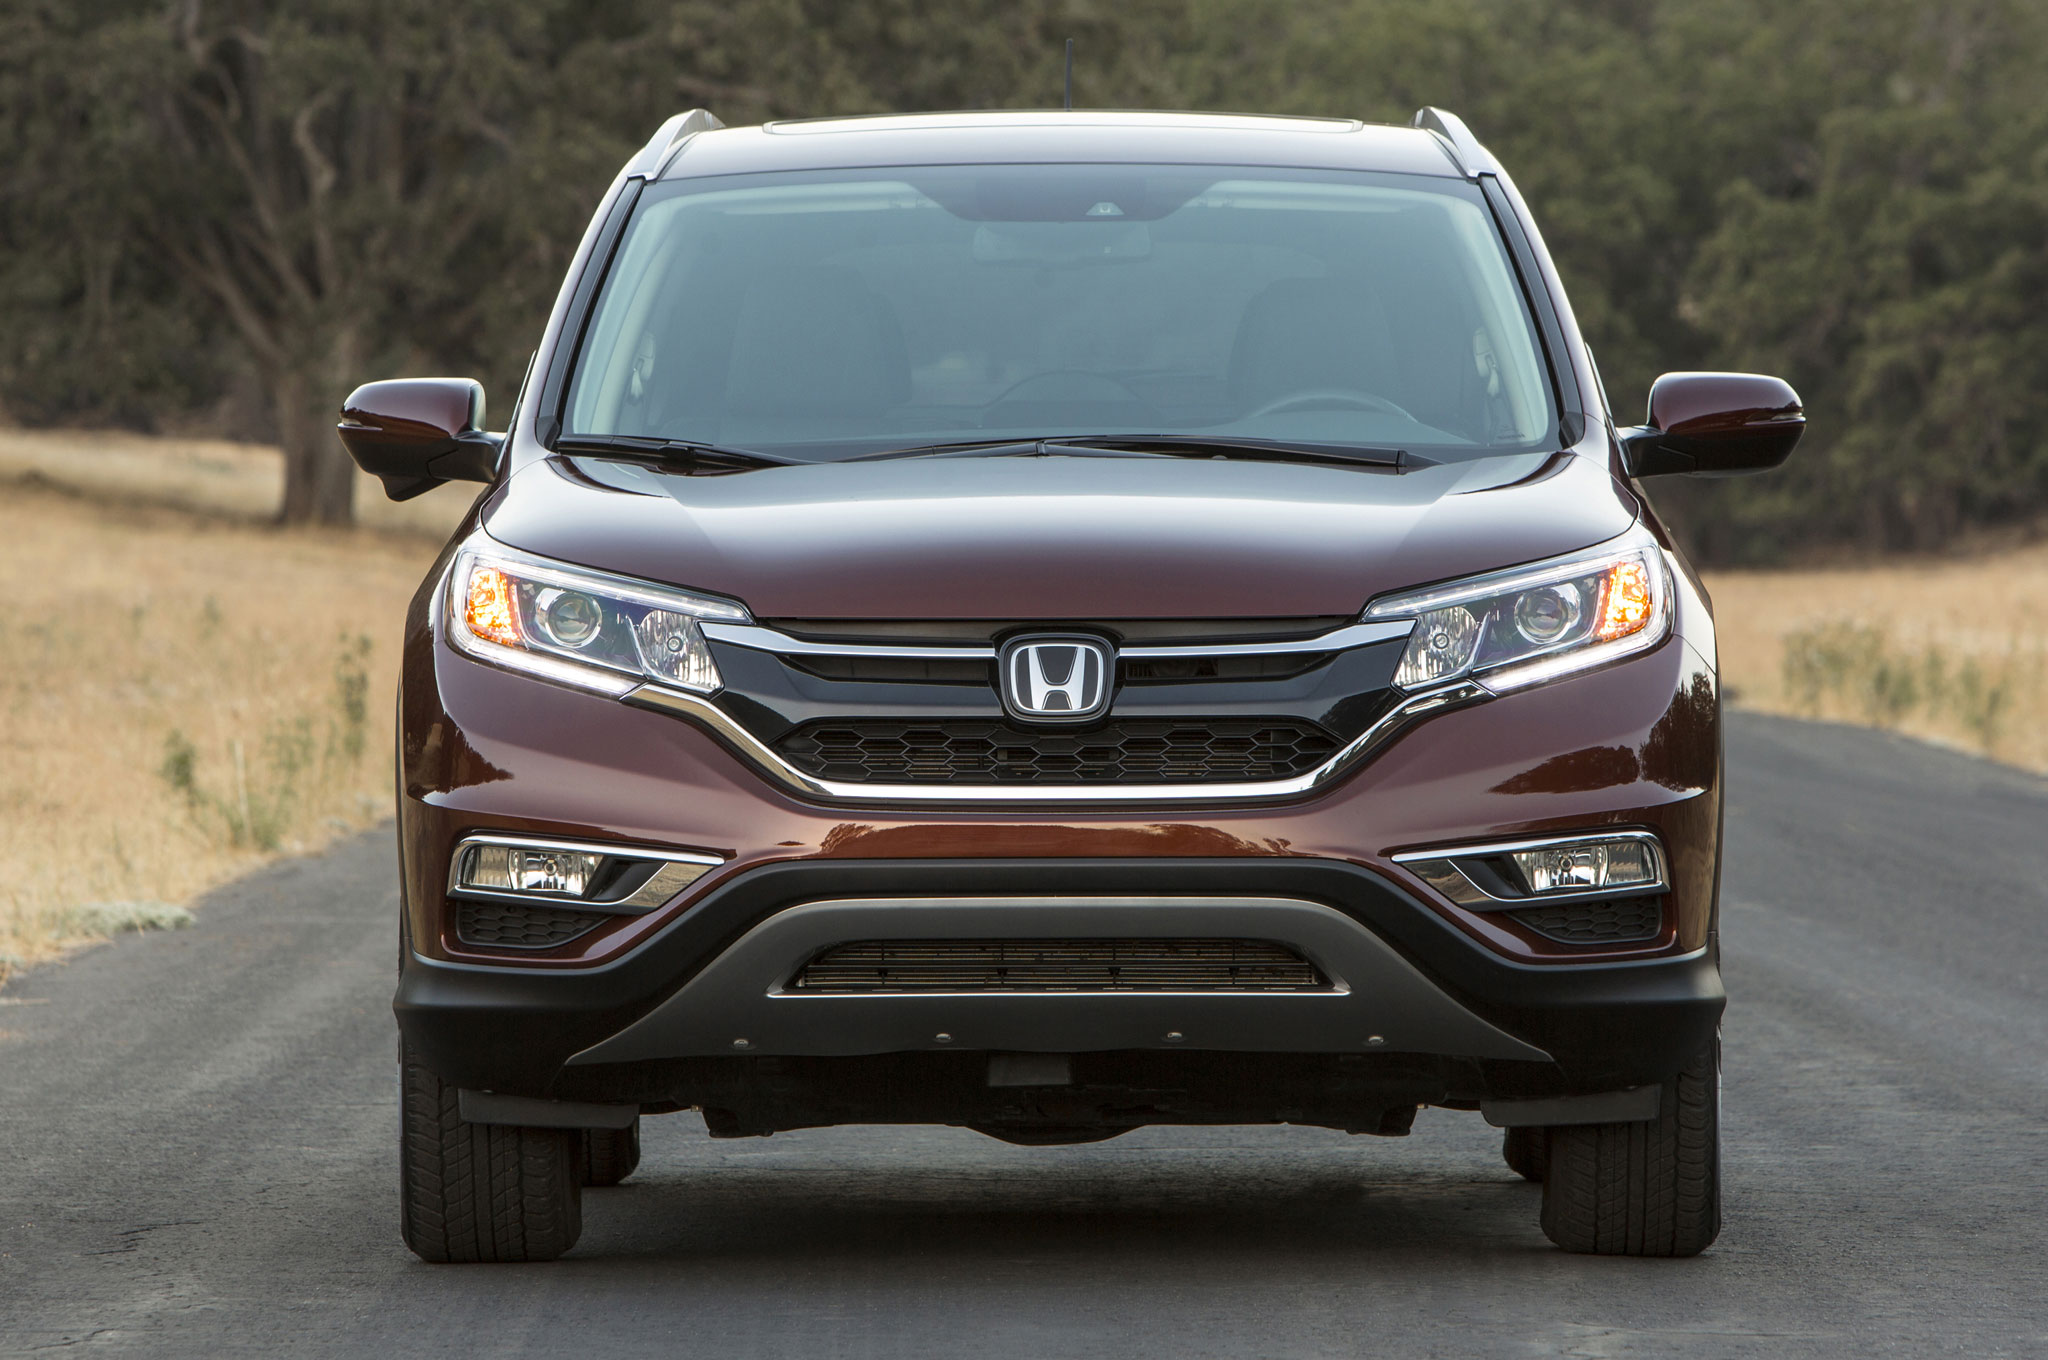 Totd 2015 Honda Cr V Subaru Forester Or Nissan Rogue Motor Trend